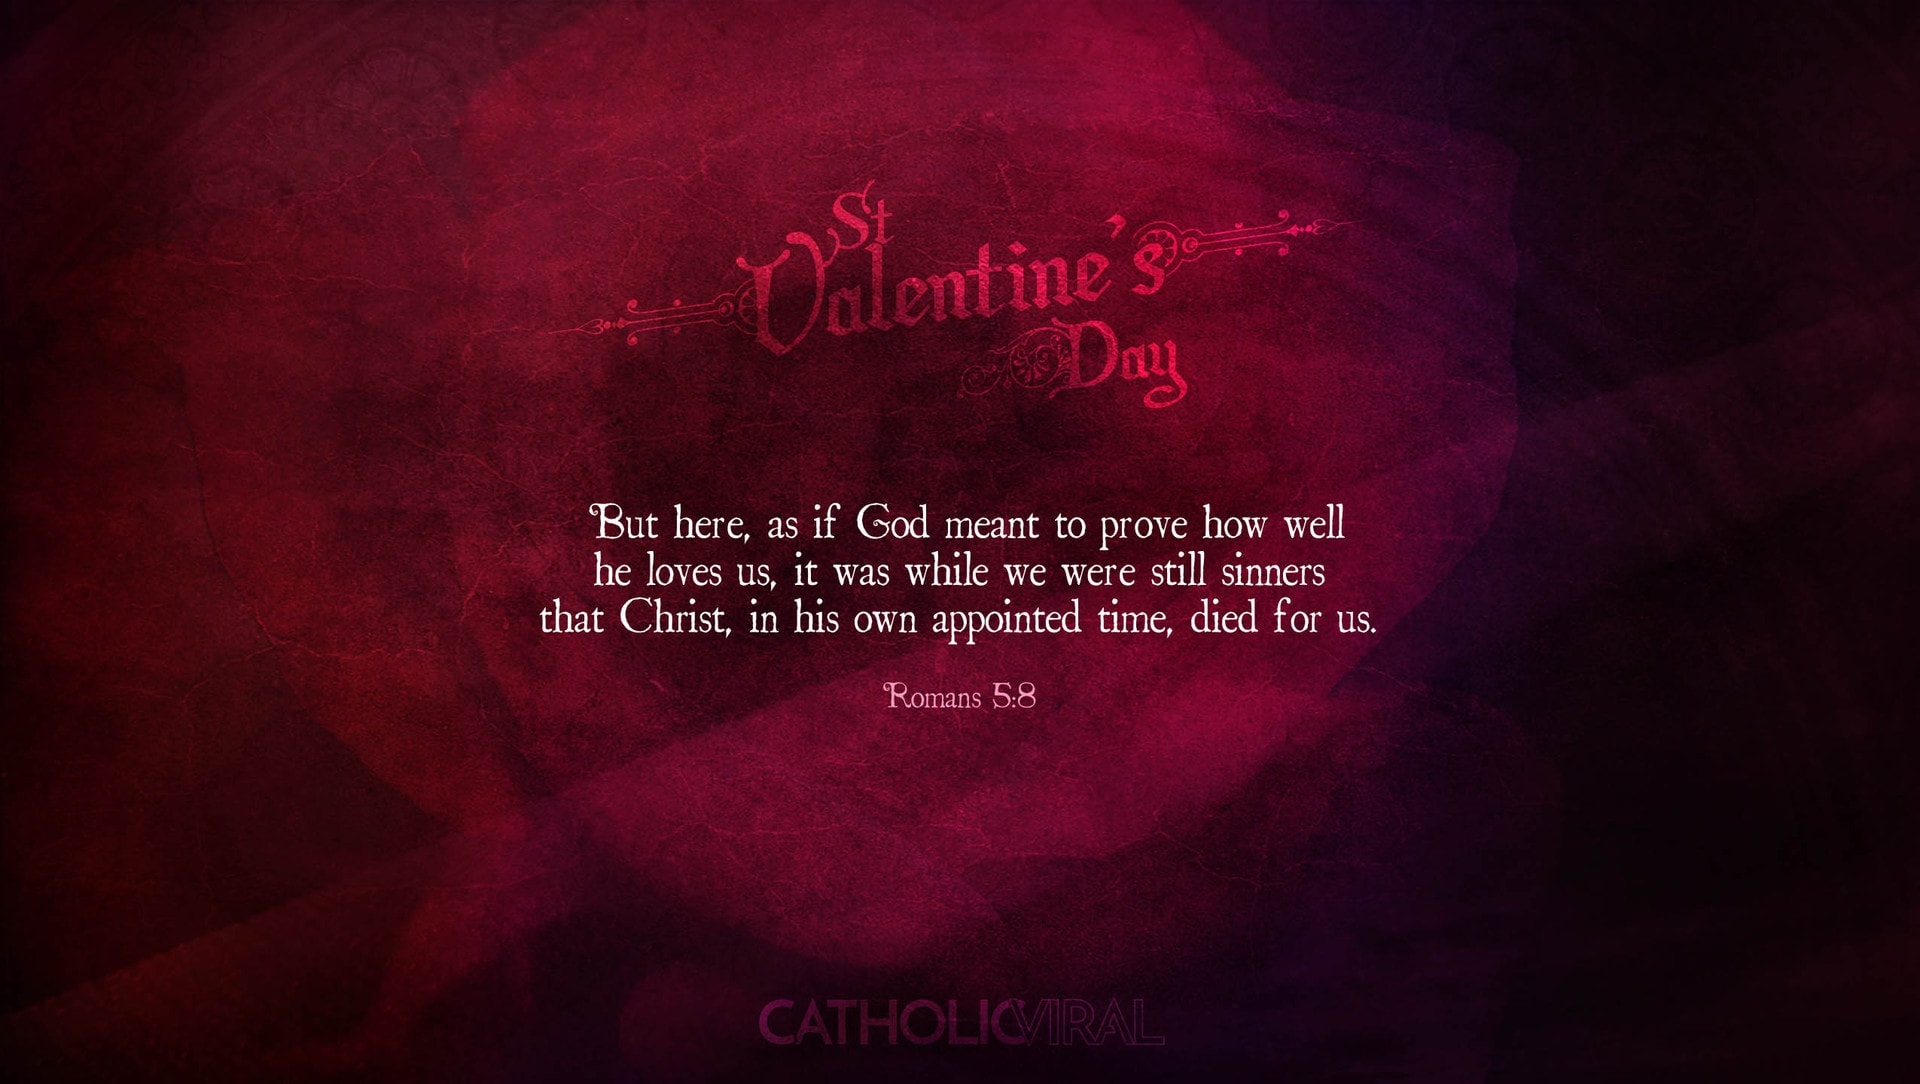 Christian Valentines Day Quotes 25 Valentines' Day Bible Verses On Love  25 Free Wallpapers